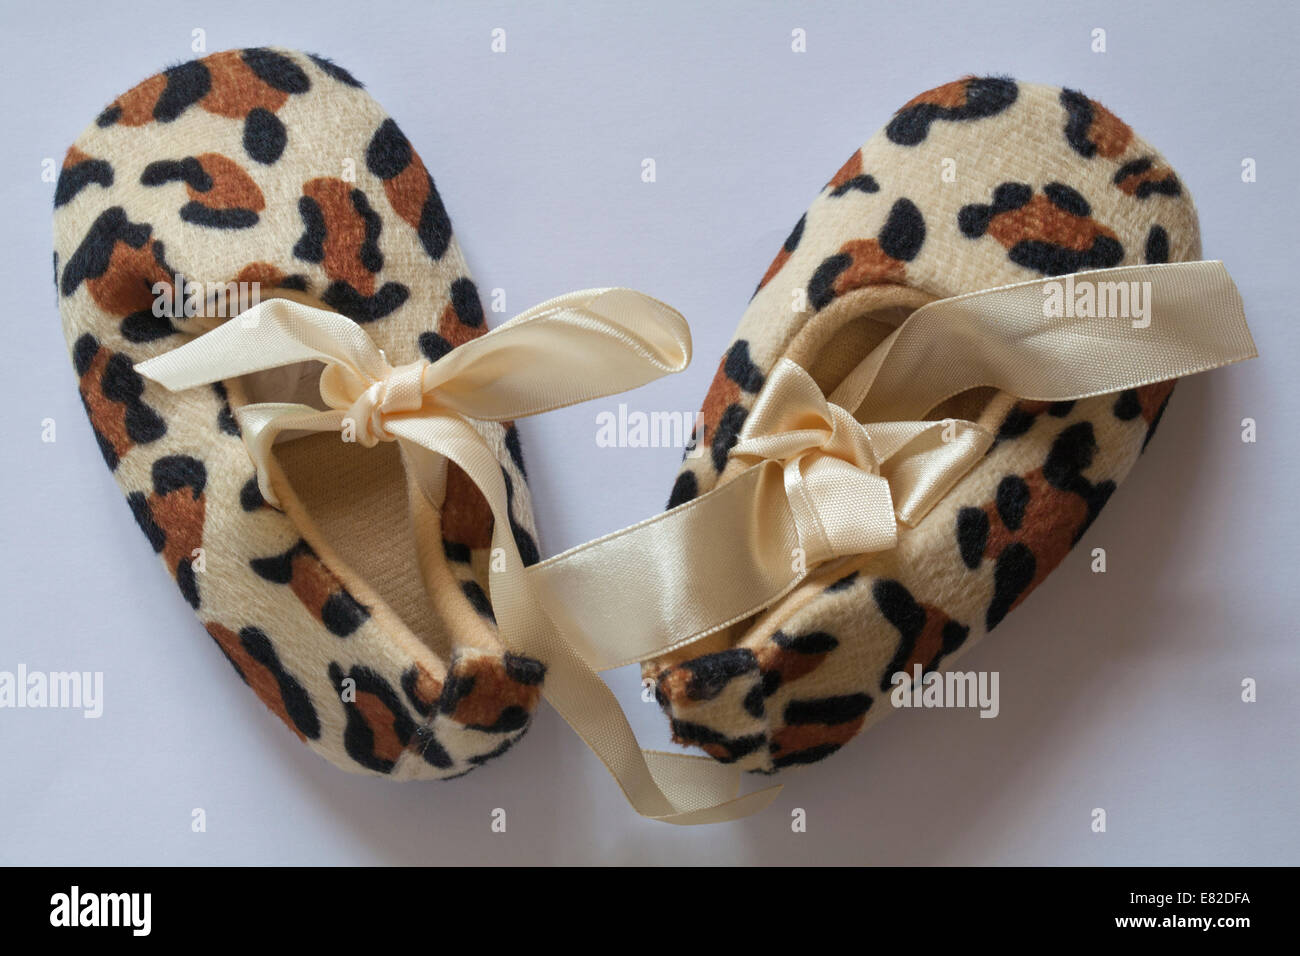 Animal print baby booties shoes isolated on white background - Stock Image